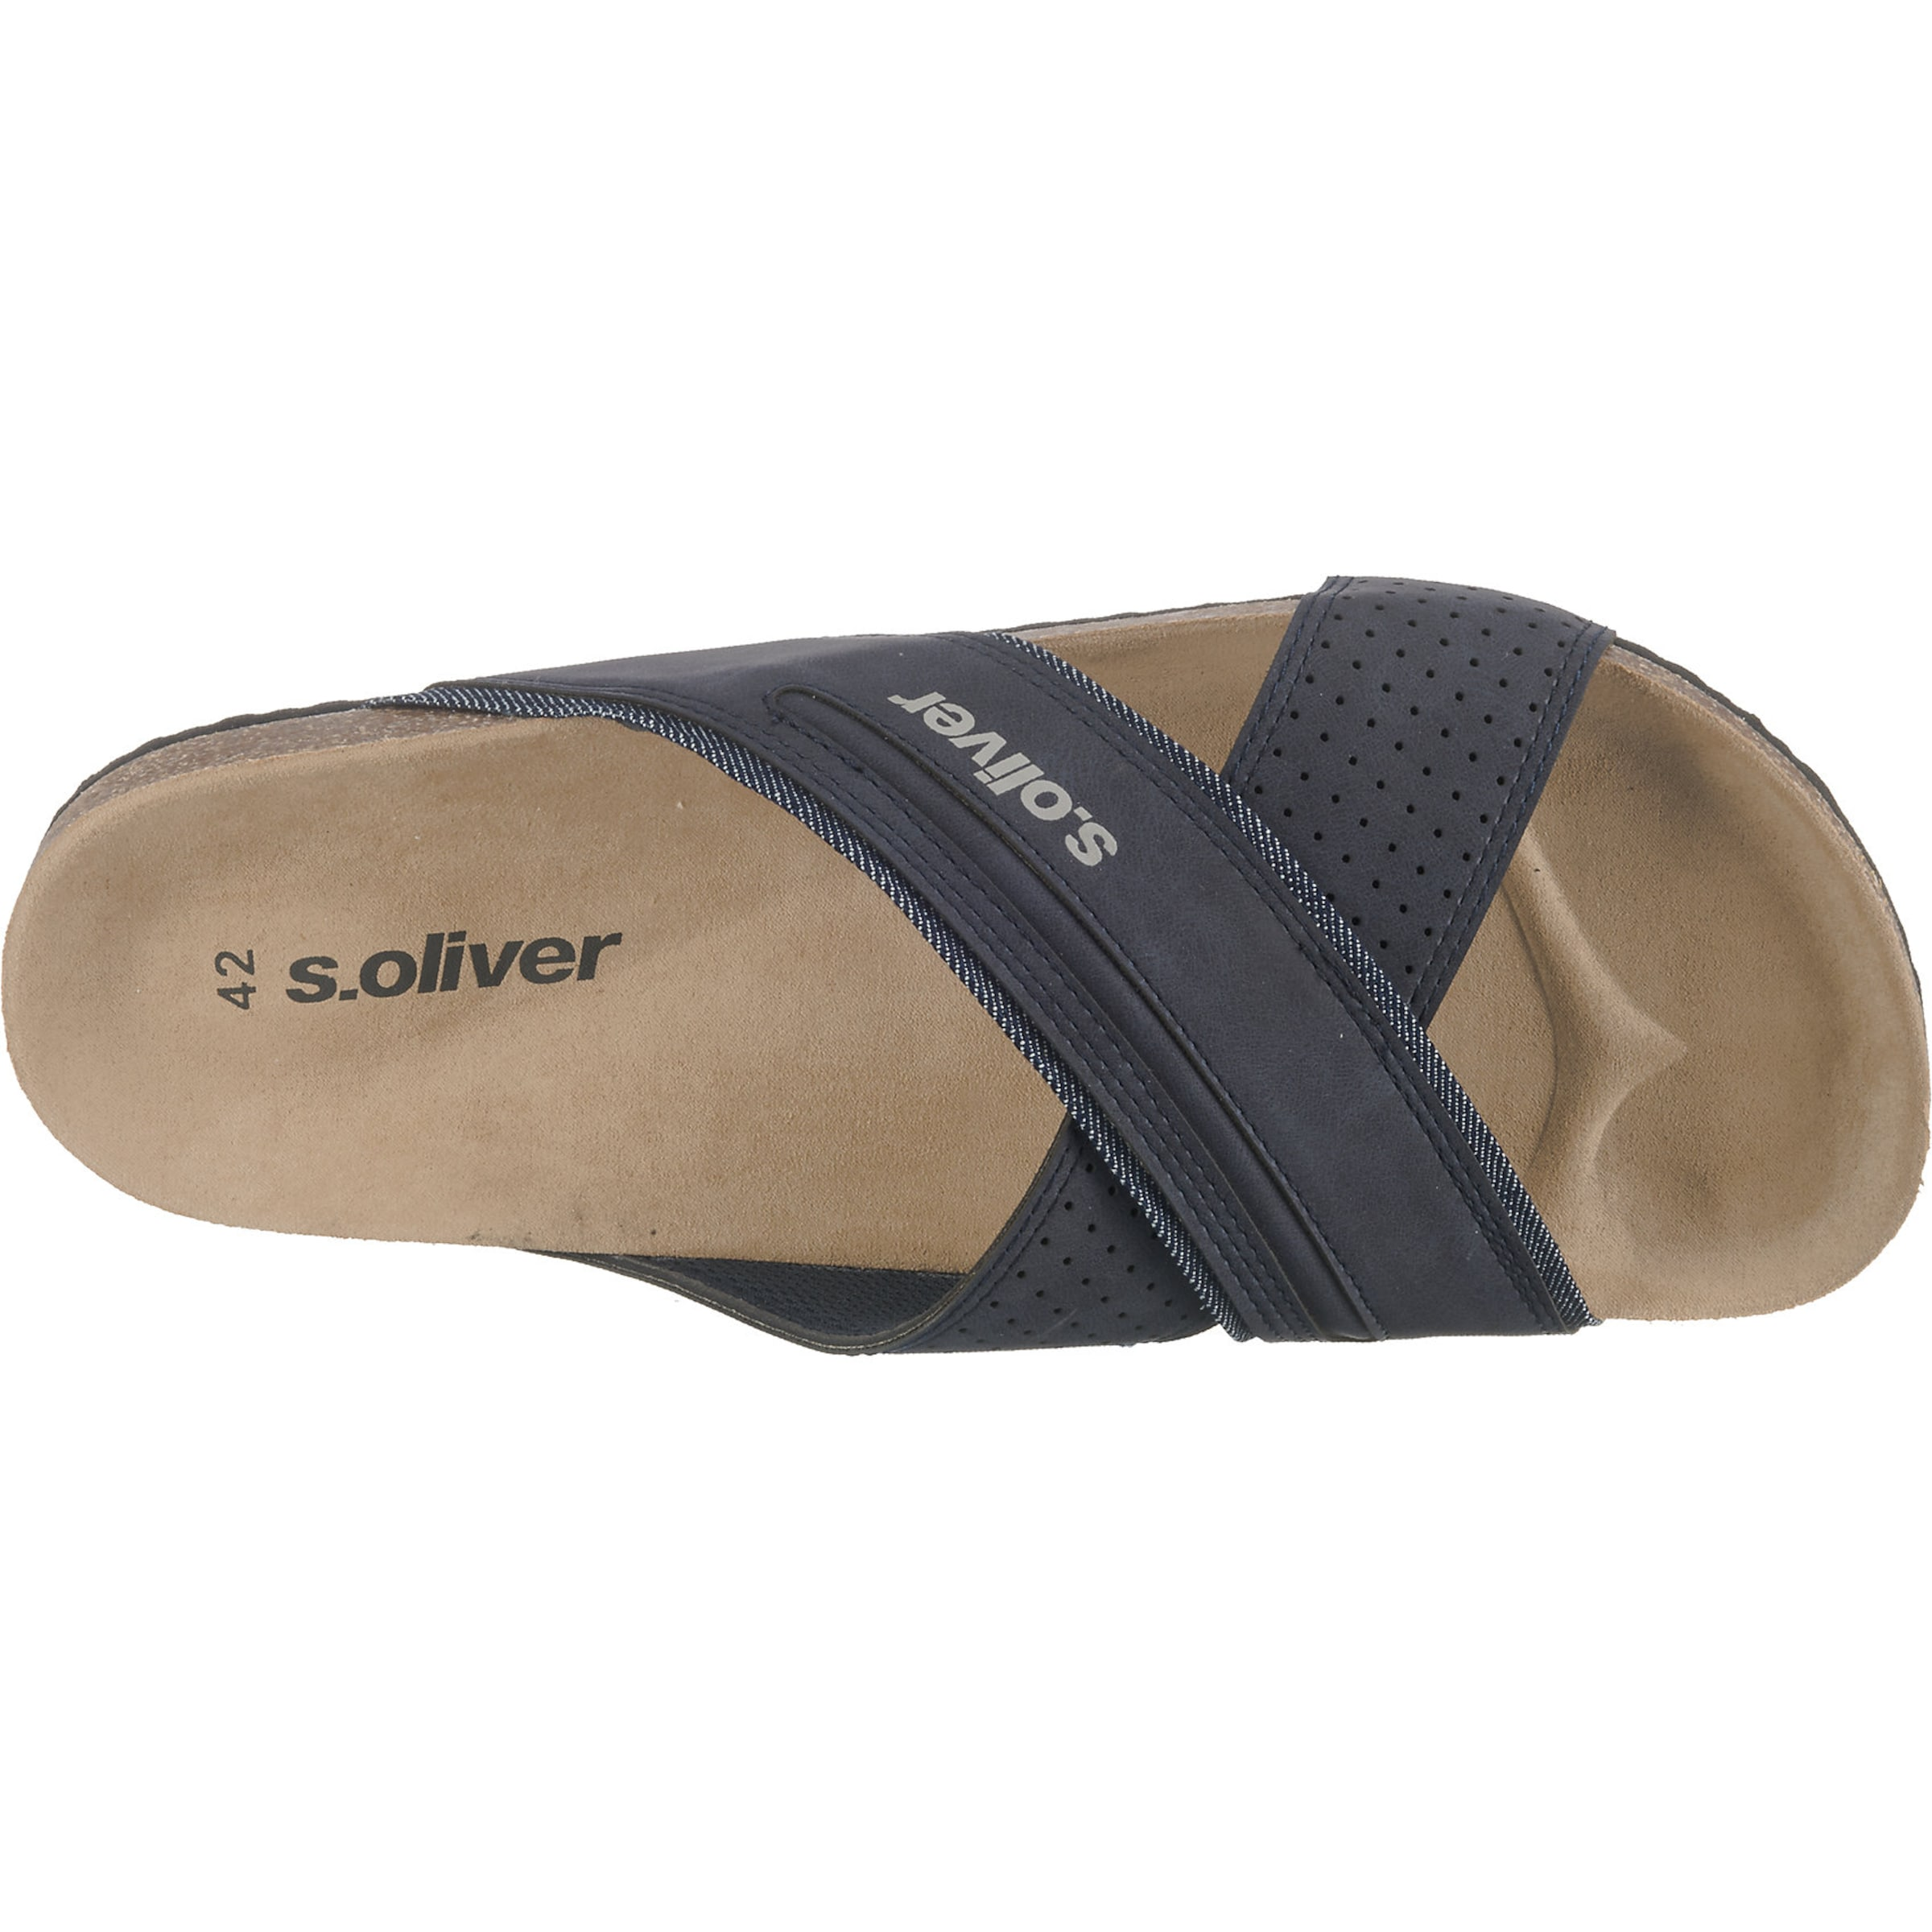 Label S Red oliver Navy In Slipper m8nPvy0ONw